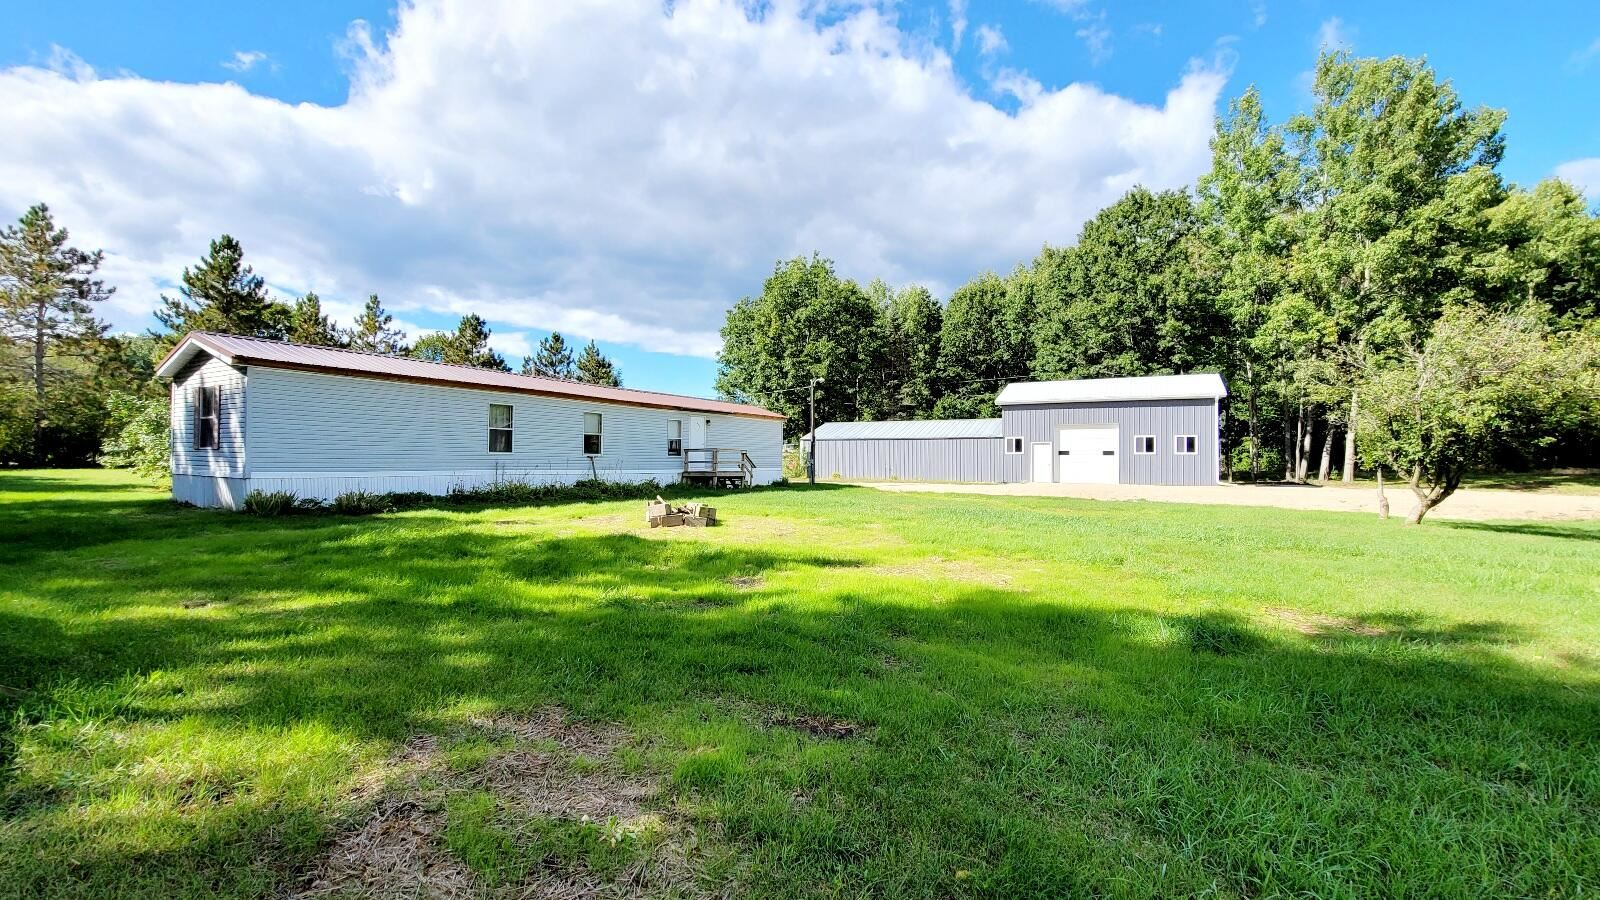 7790 NW West County Line Rd Road, Riverdale, MI 48877 - MLS#: 21108043